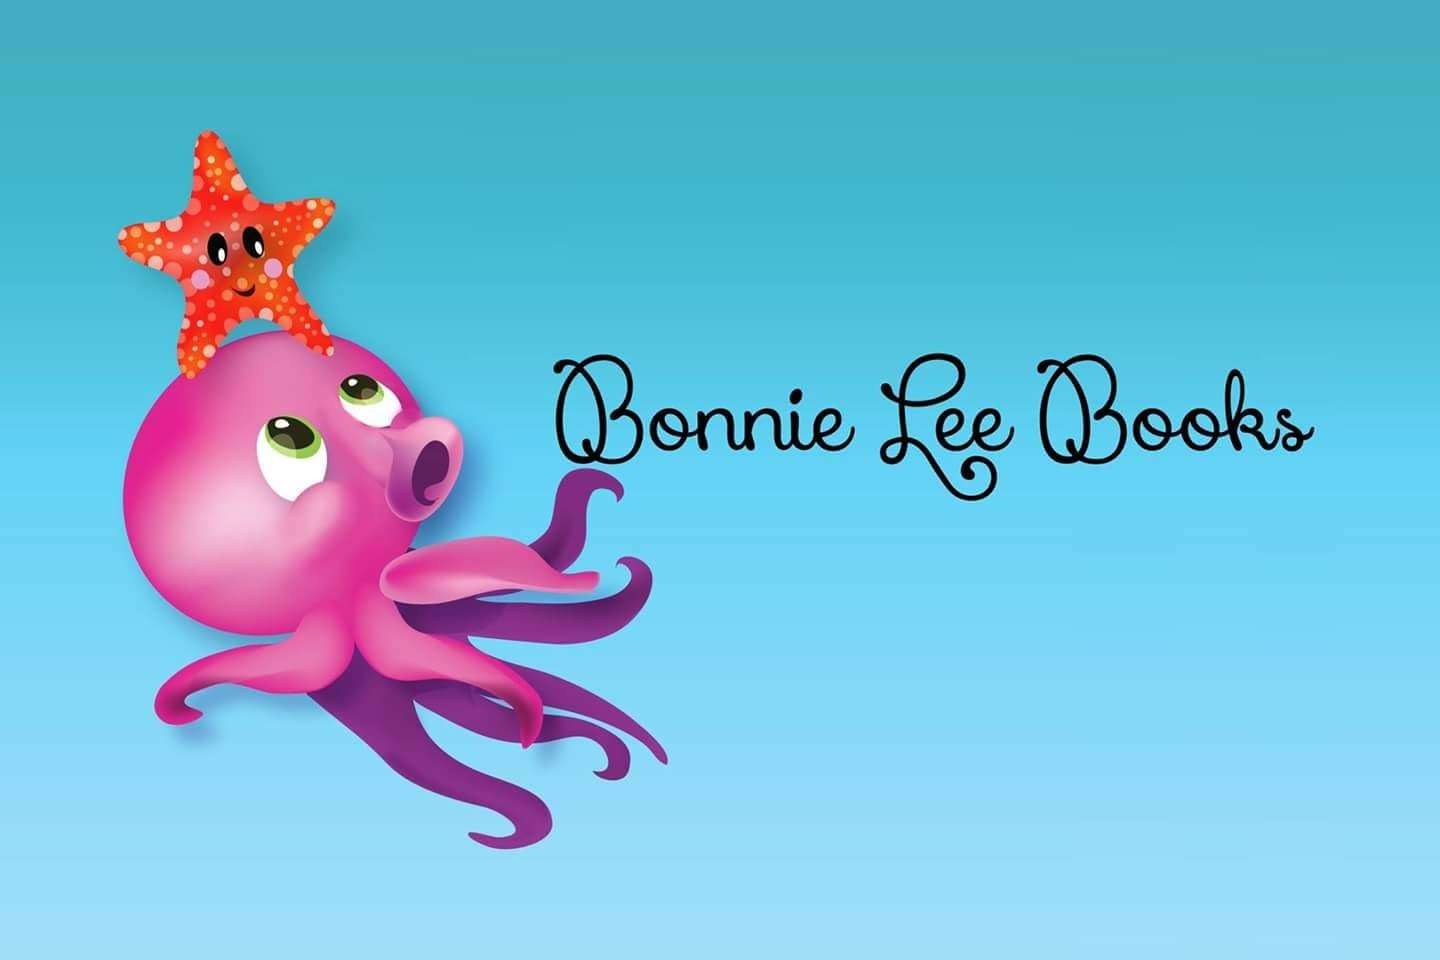 Educational Children's Stories created for baby to beginner readers teaching valuable life lessons.